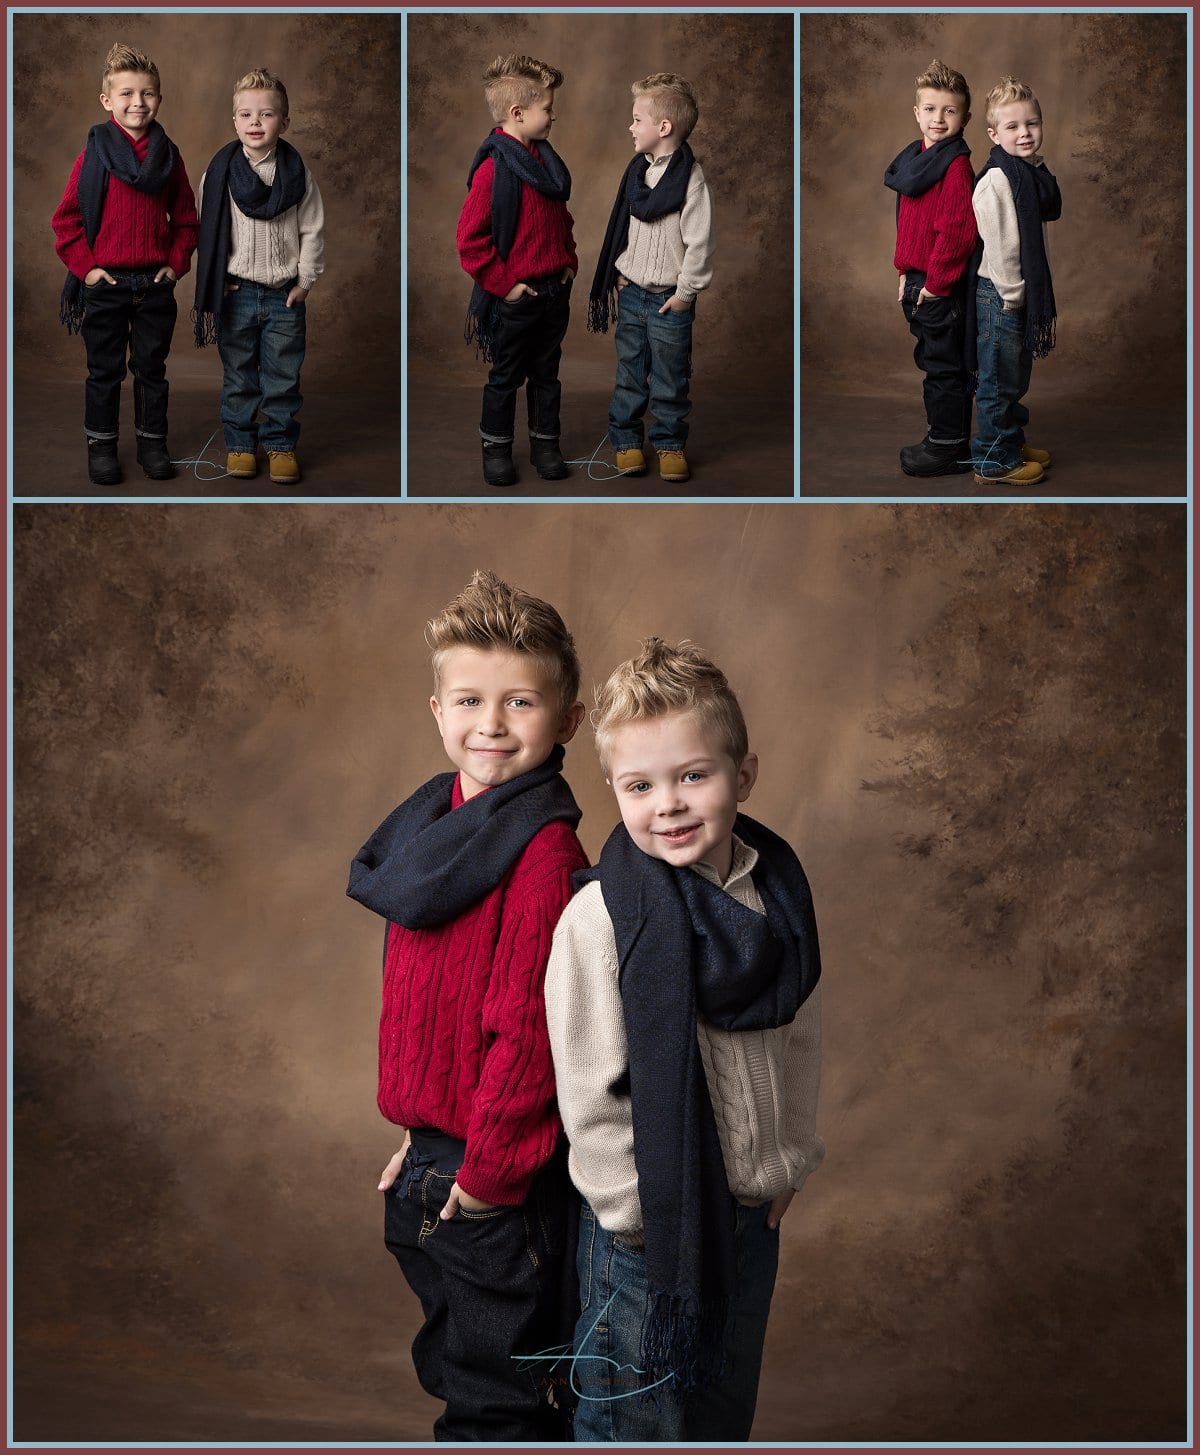 Family portraits - Luca & Dean - Ann's Photography